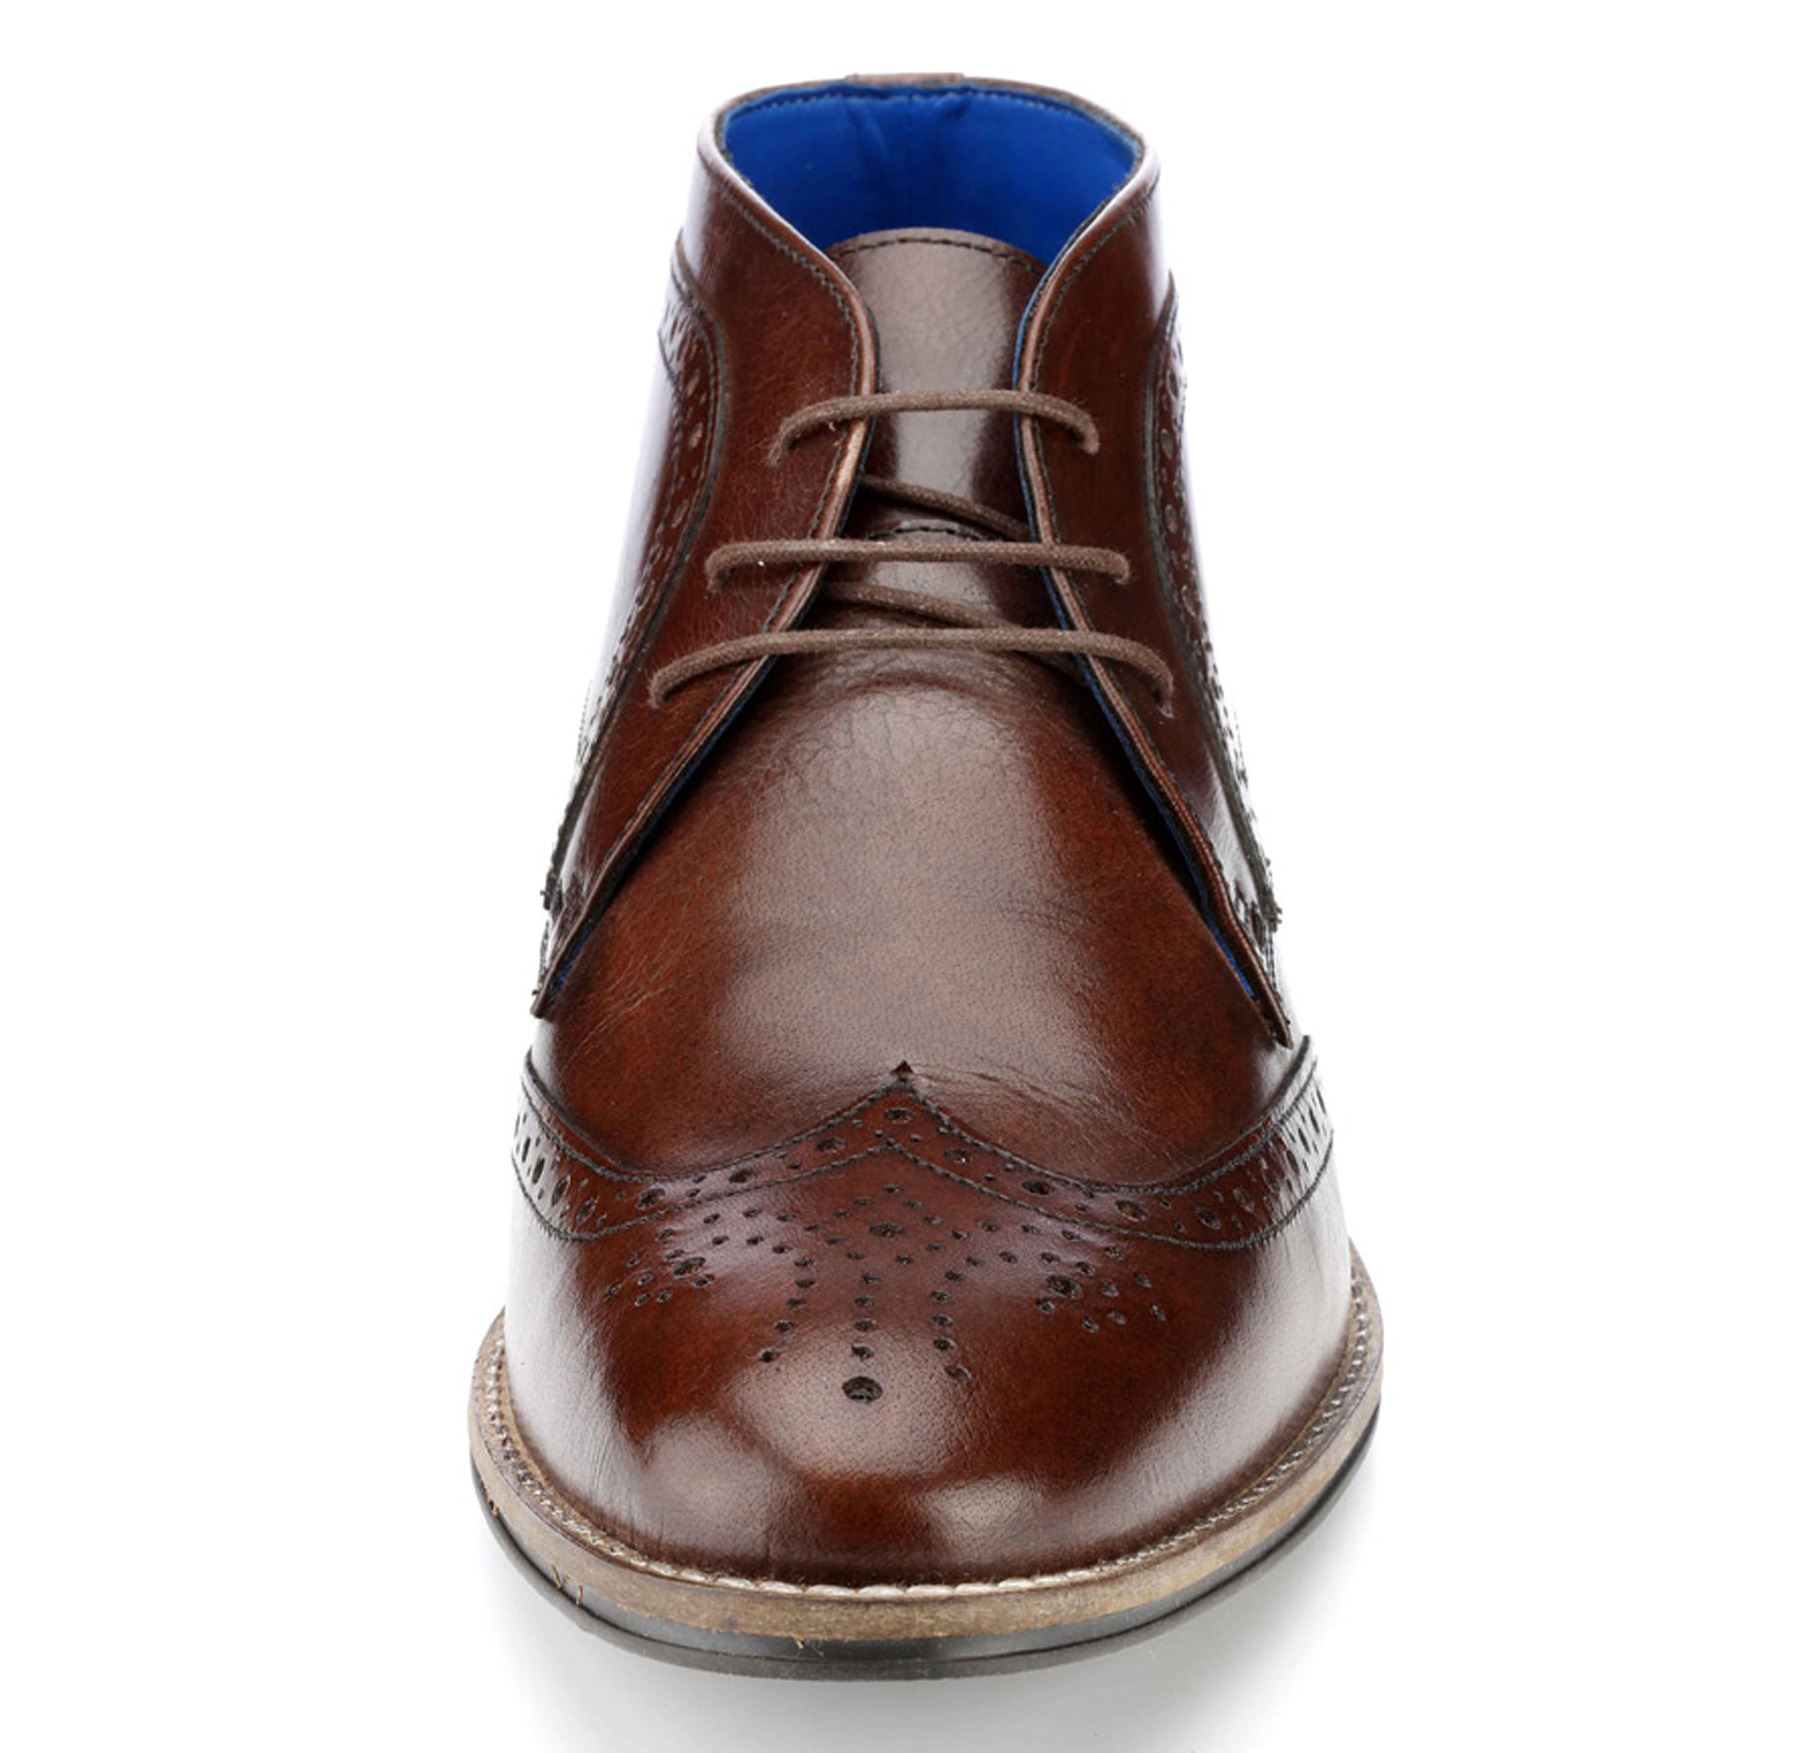 milton men Men's freeman memory foam dress oxfords get snazzy new style with the freeman milton with memory foam insoles and soft microfiber shoe lining, these oxfords are as comfy as they are stylish.